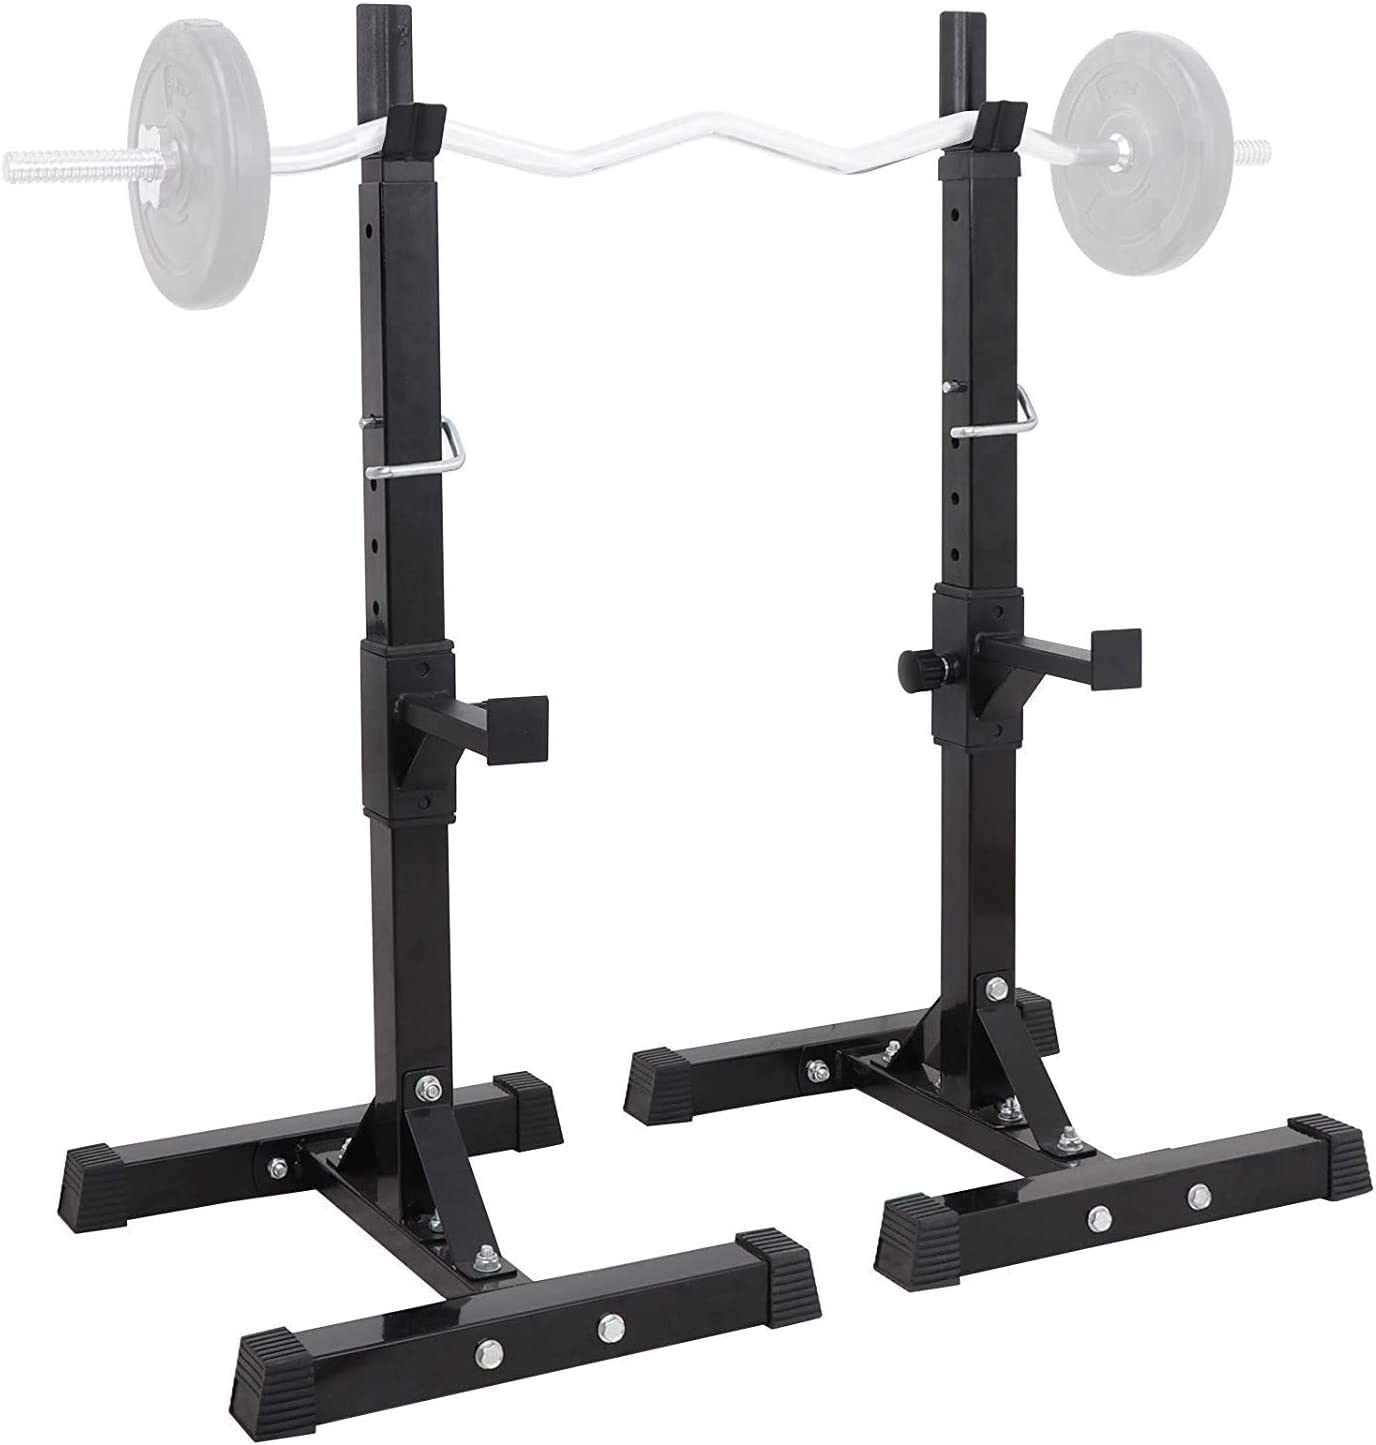 Nisorpa Pair of Adjustable 41-64 inches Dumbbell Squat Racks Max Load 441Lbs Anti-Slip Barbell Rack Holder Sturdy Steel Squat Free Bench Press Stands Gym/Home Gym Portable Dumbbell Stands